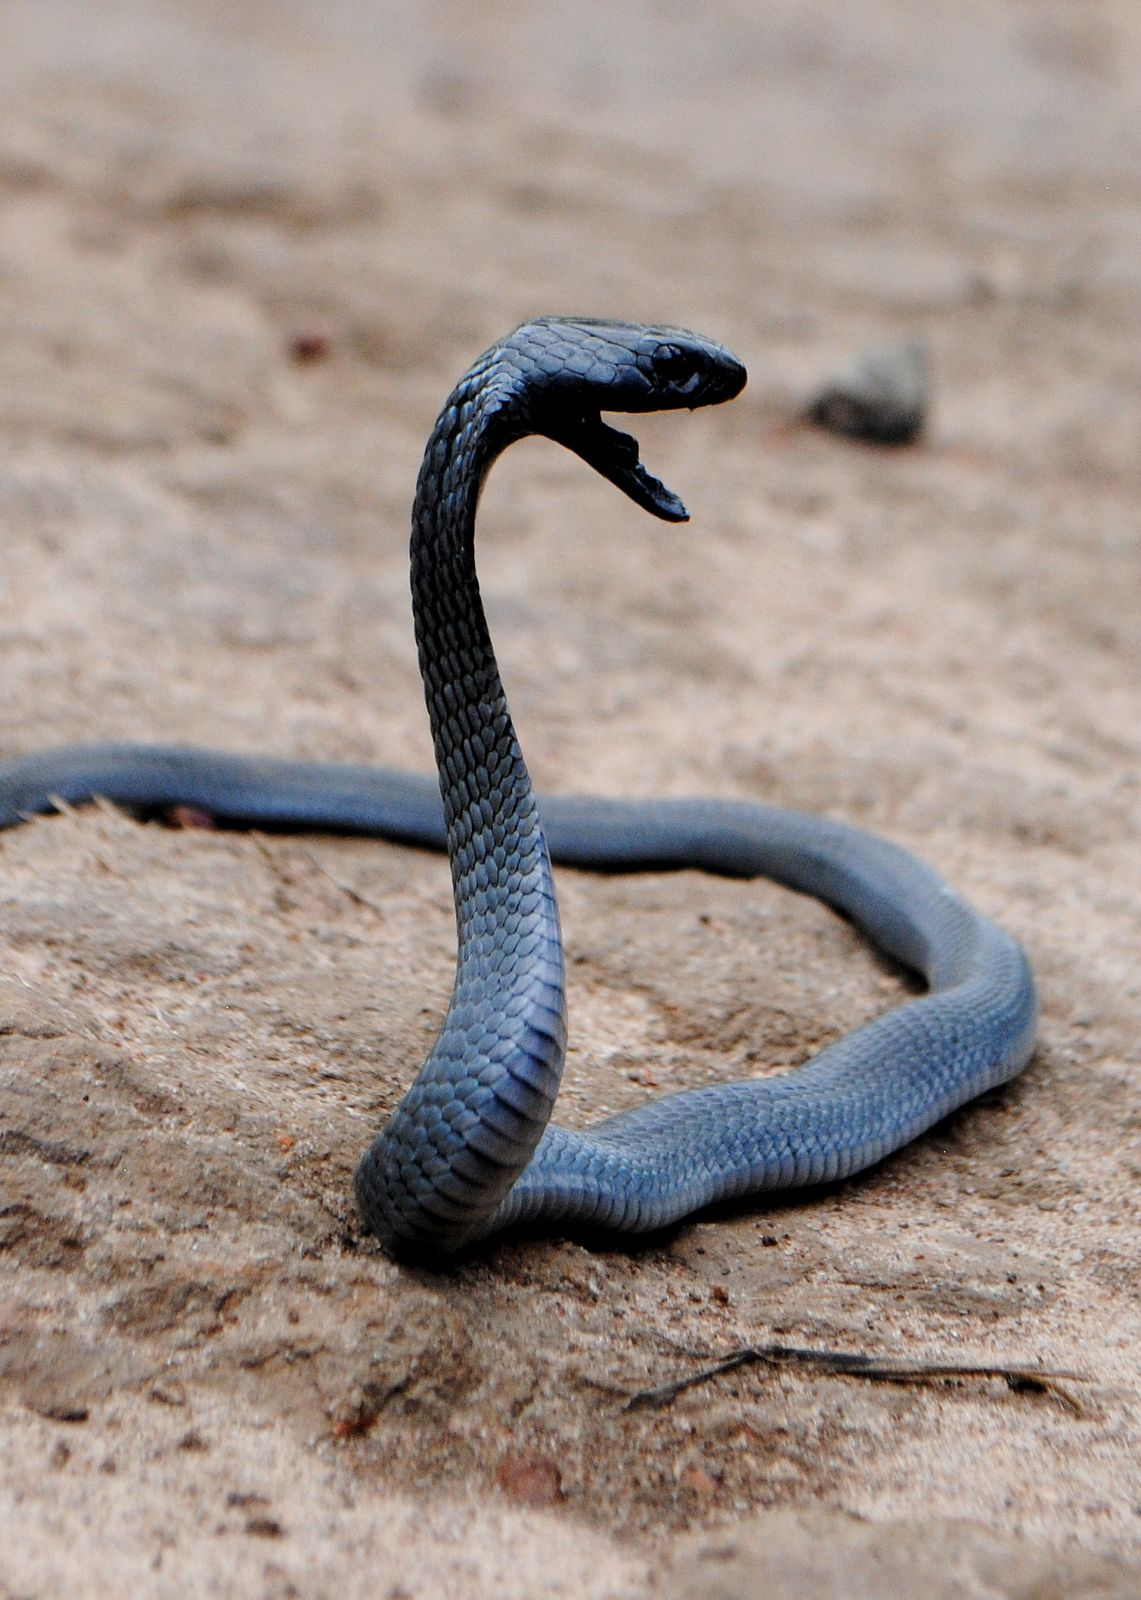 Black Necked Spitting Cobra (Naja nigricollis)